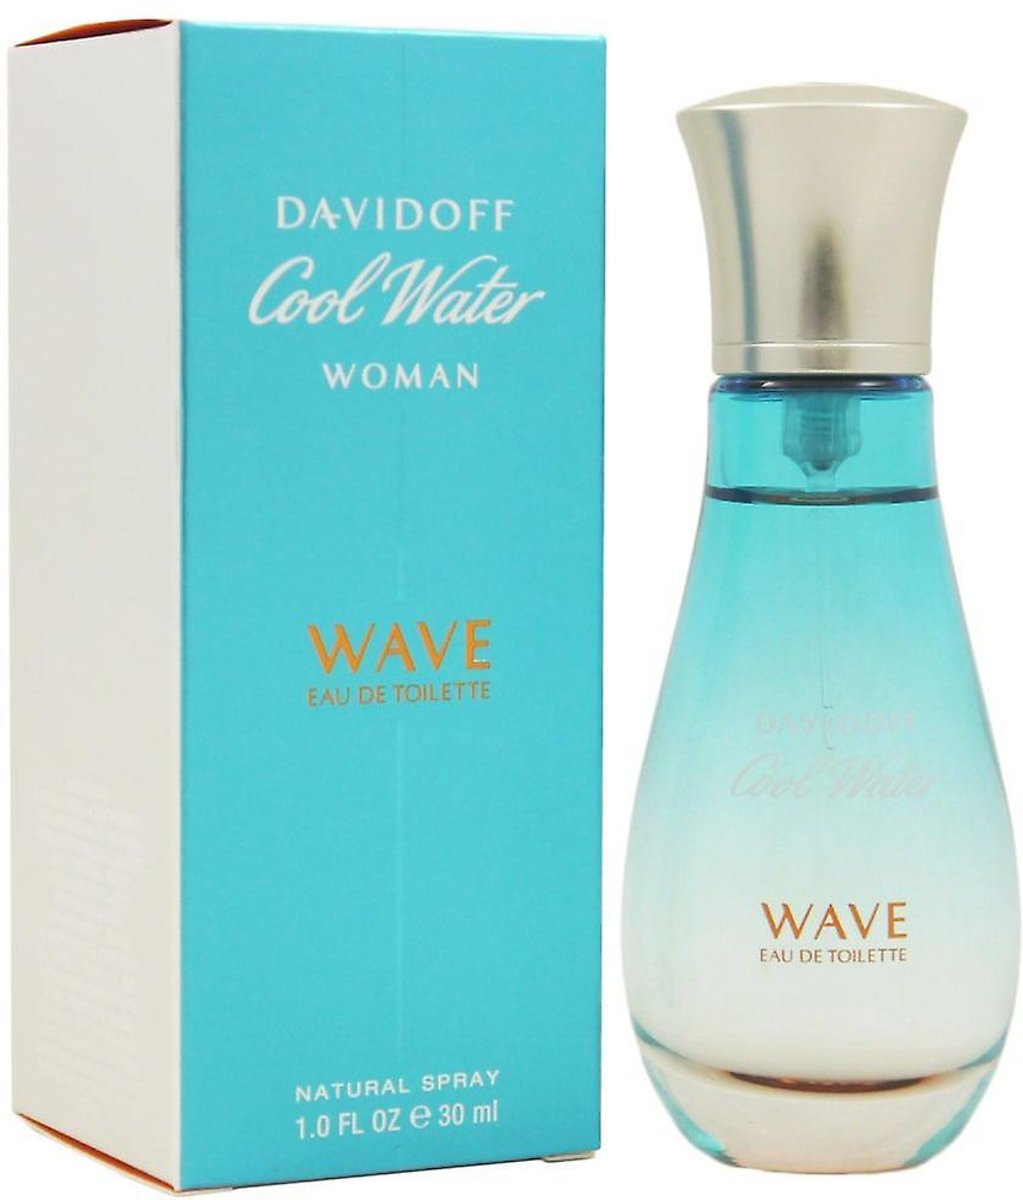 DAVIDOFF COOLWATER WAVE WMN EDT Spr 30,0 ml